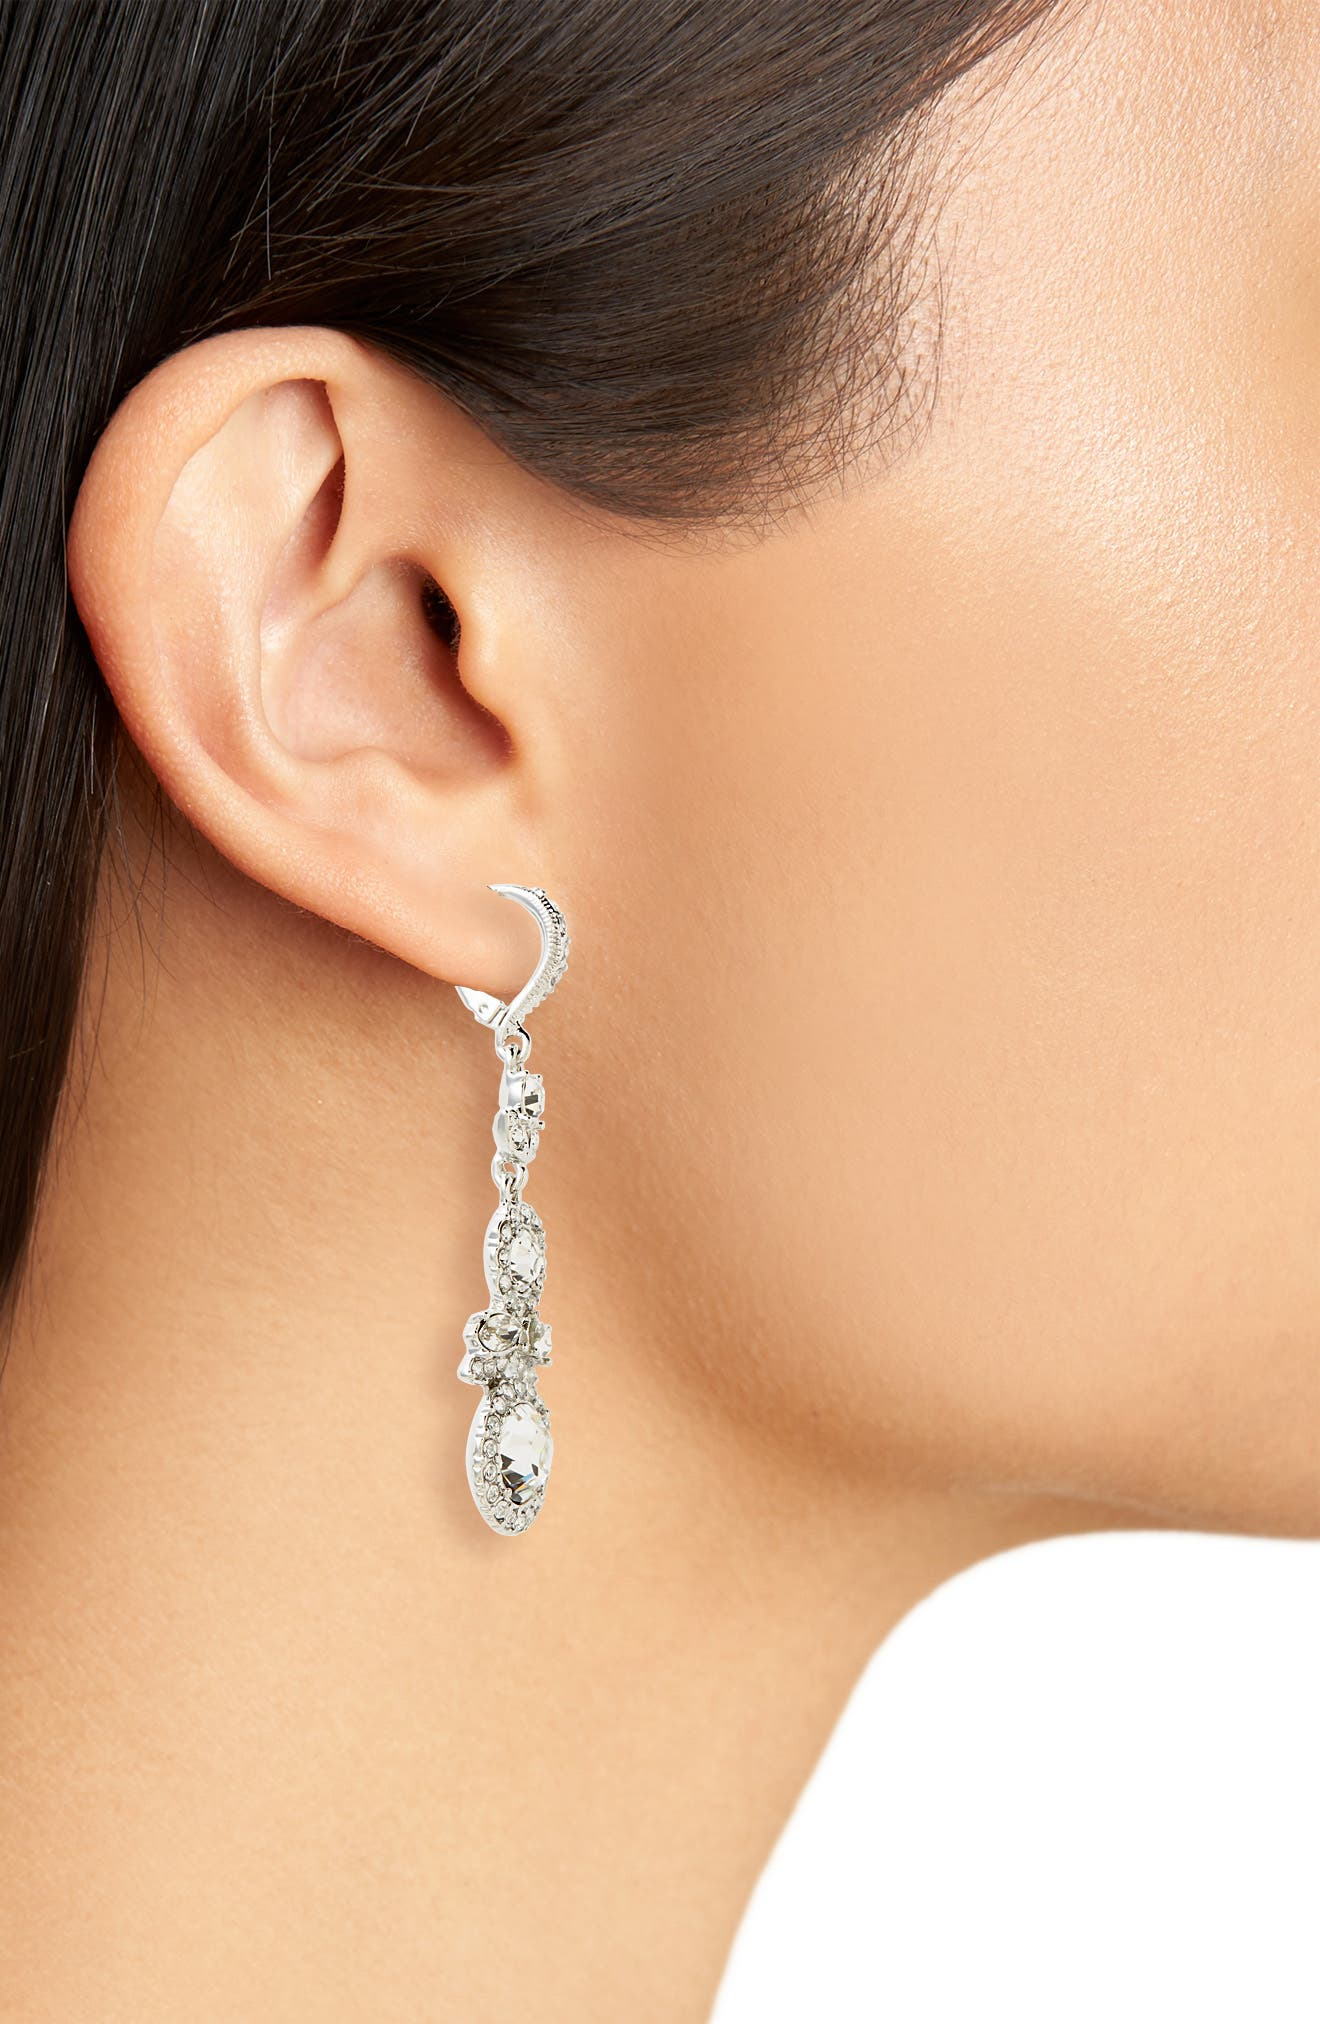 Crystal Drop Earrings,                             Alternate thumbnail 2, color,                             CRYSTAL/ SILVER